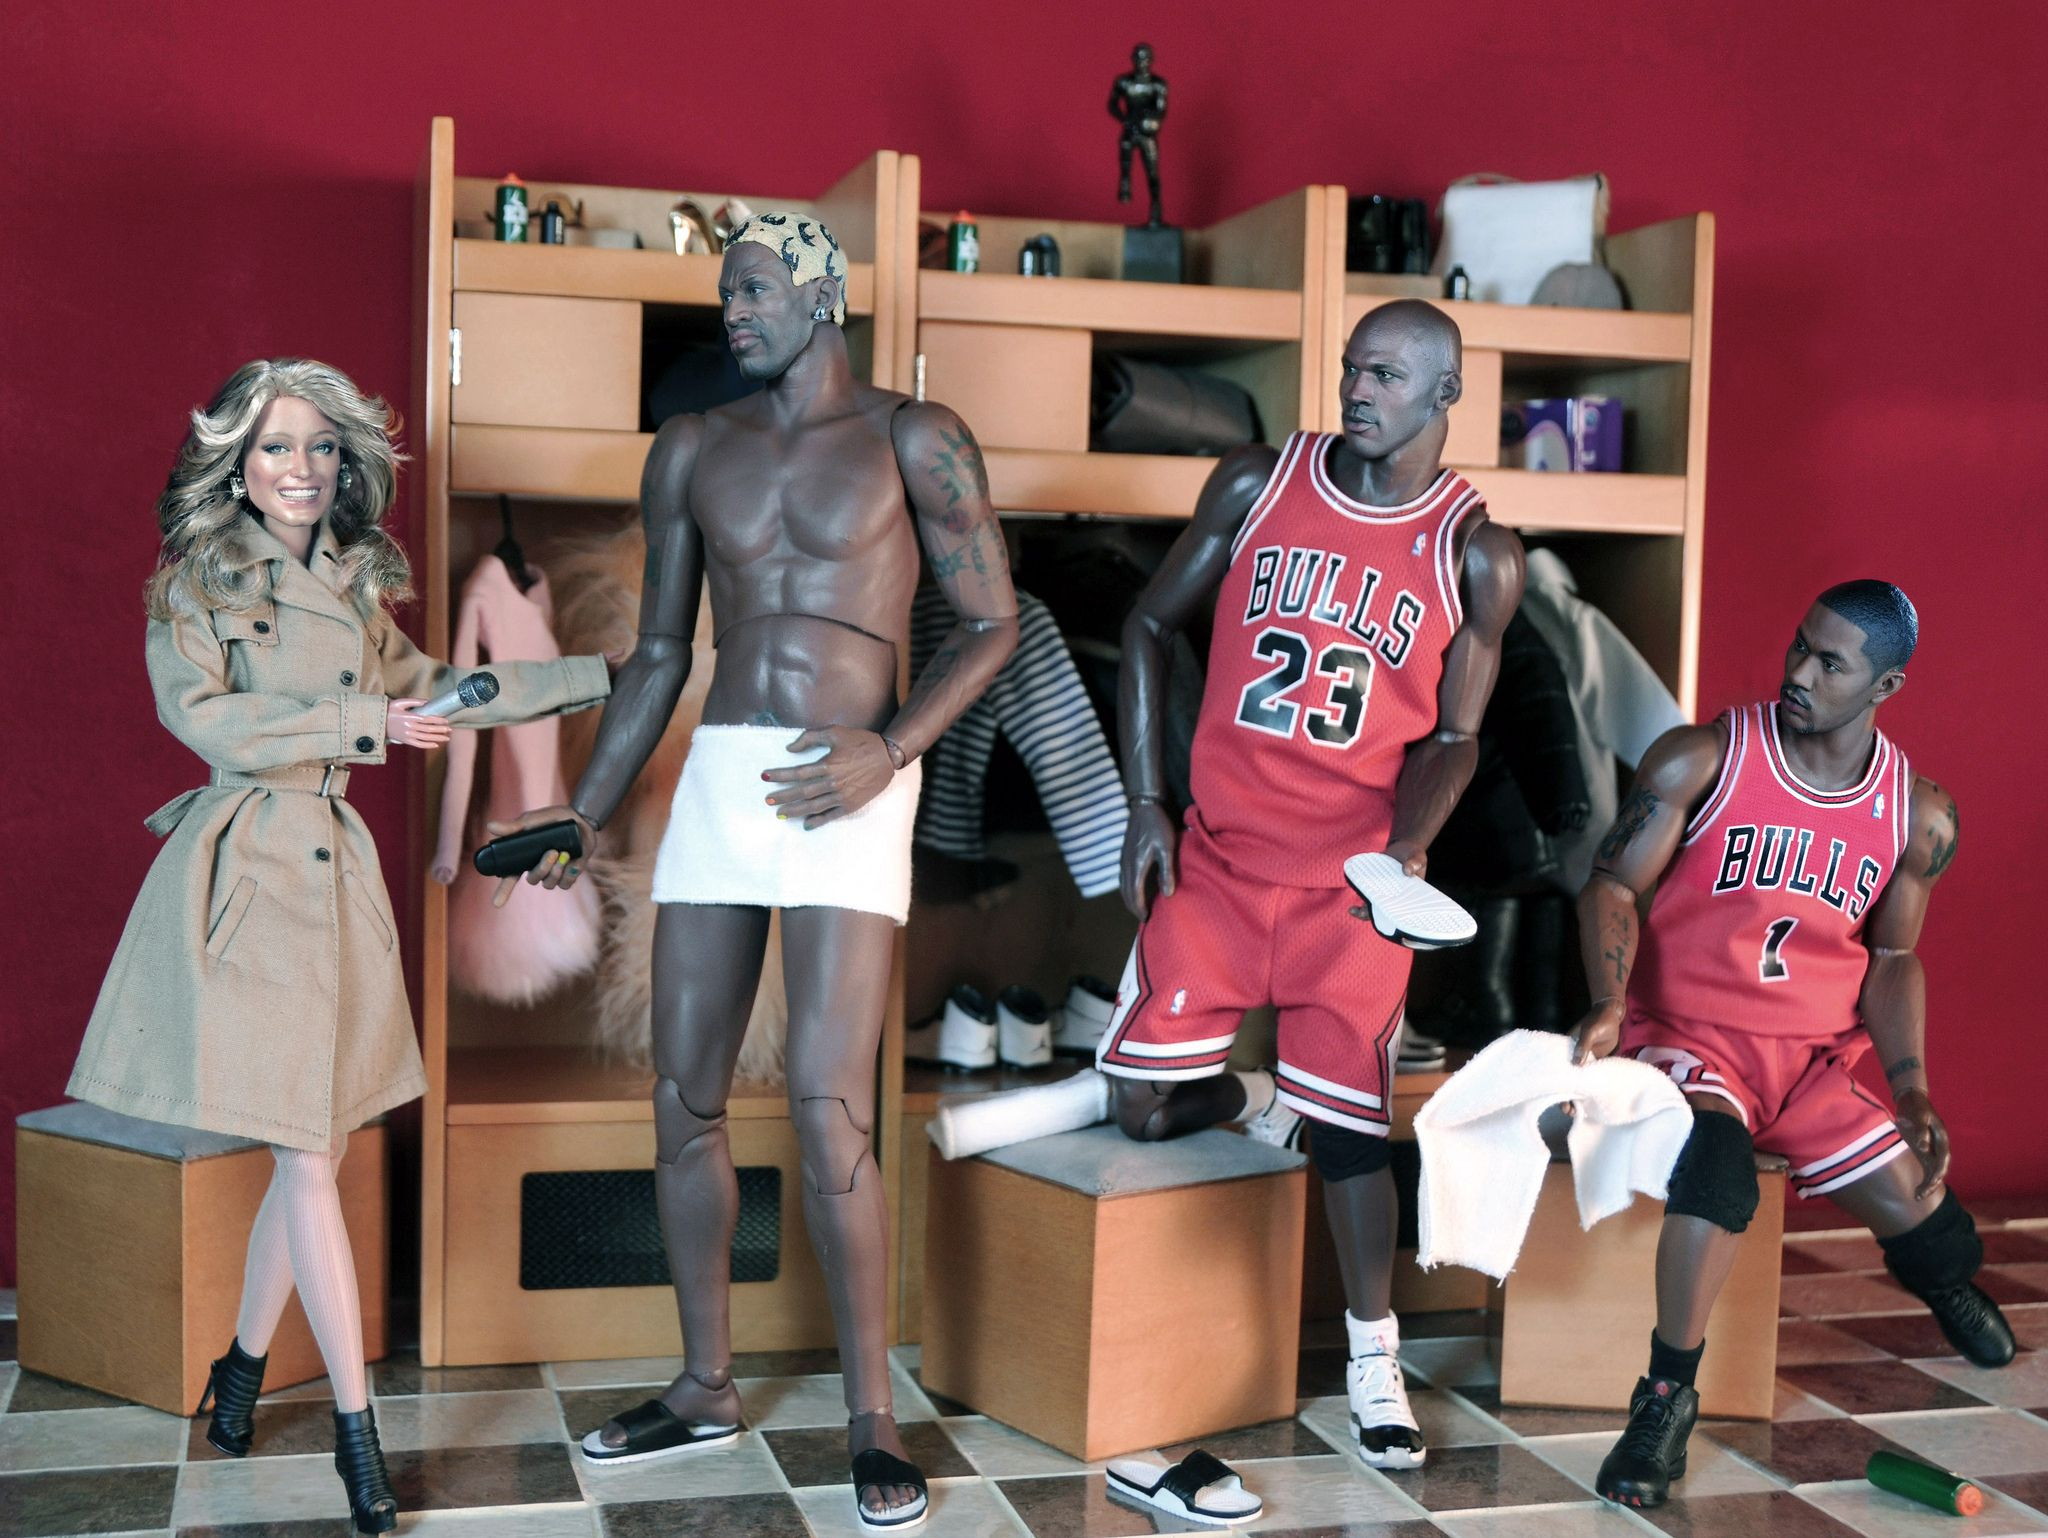 Chicago Bulls ANGEL | Reporting Live for ESPN Farrah Fawcett interviews NBA  stars Dennis Rodman, Michael Jordan & Derrick Rose of the Chicago Bulls.